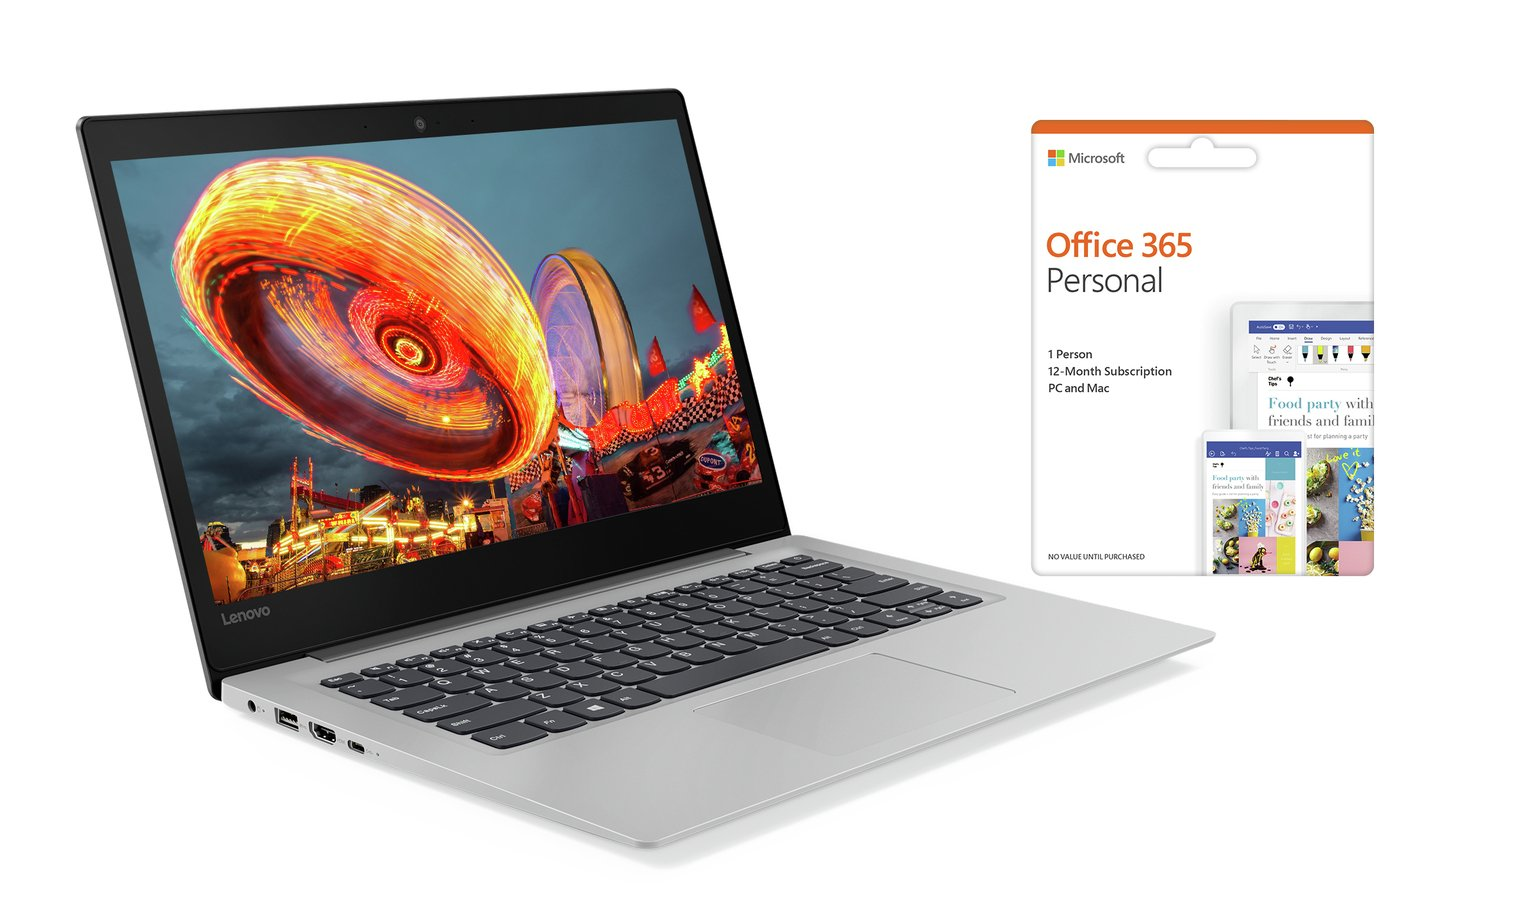 Lenovo IdeaPad S130 14 Inch Celeron 4GB 64GB Cloudbook -Grey from Lenovo